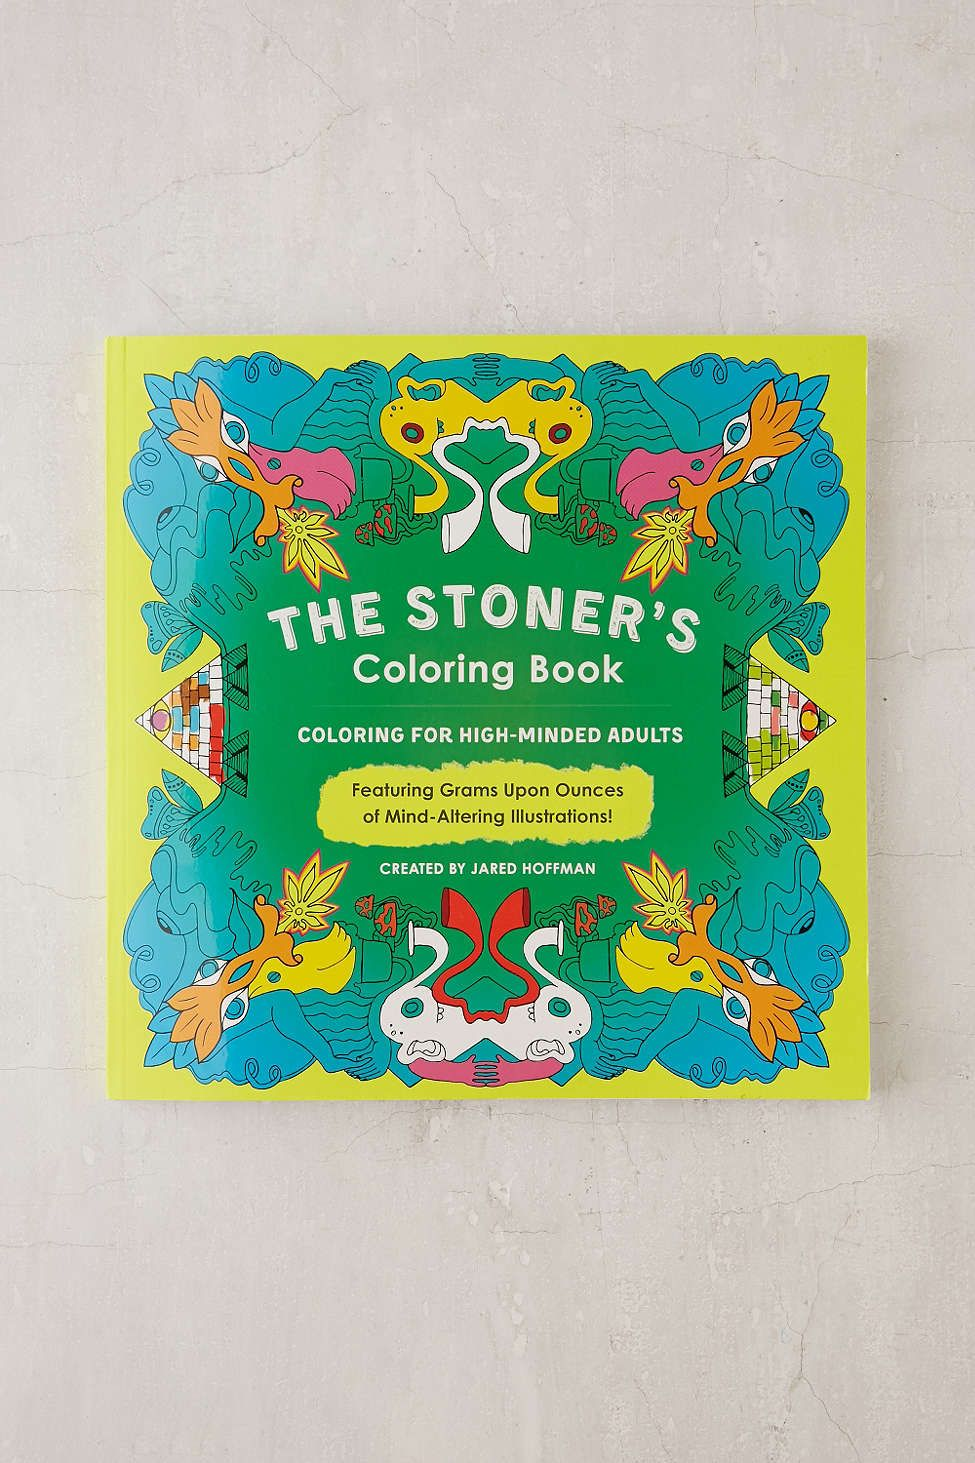 The Stoner S Coloring Book Coloring For High Minded Adults By Jared Hoffman Coloring Books Love Coloring Pages Lost Ocean Coloring Book